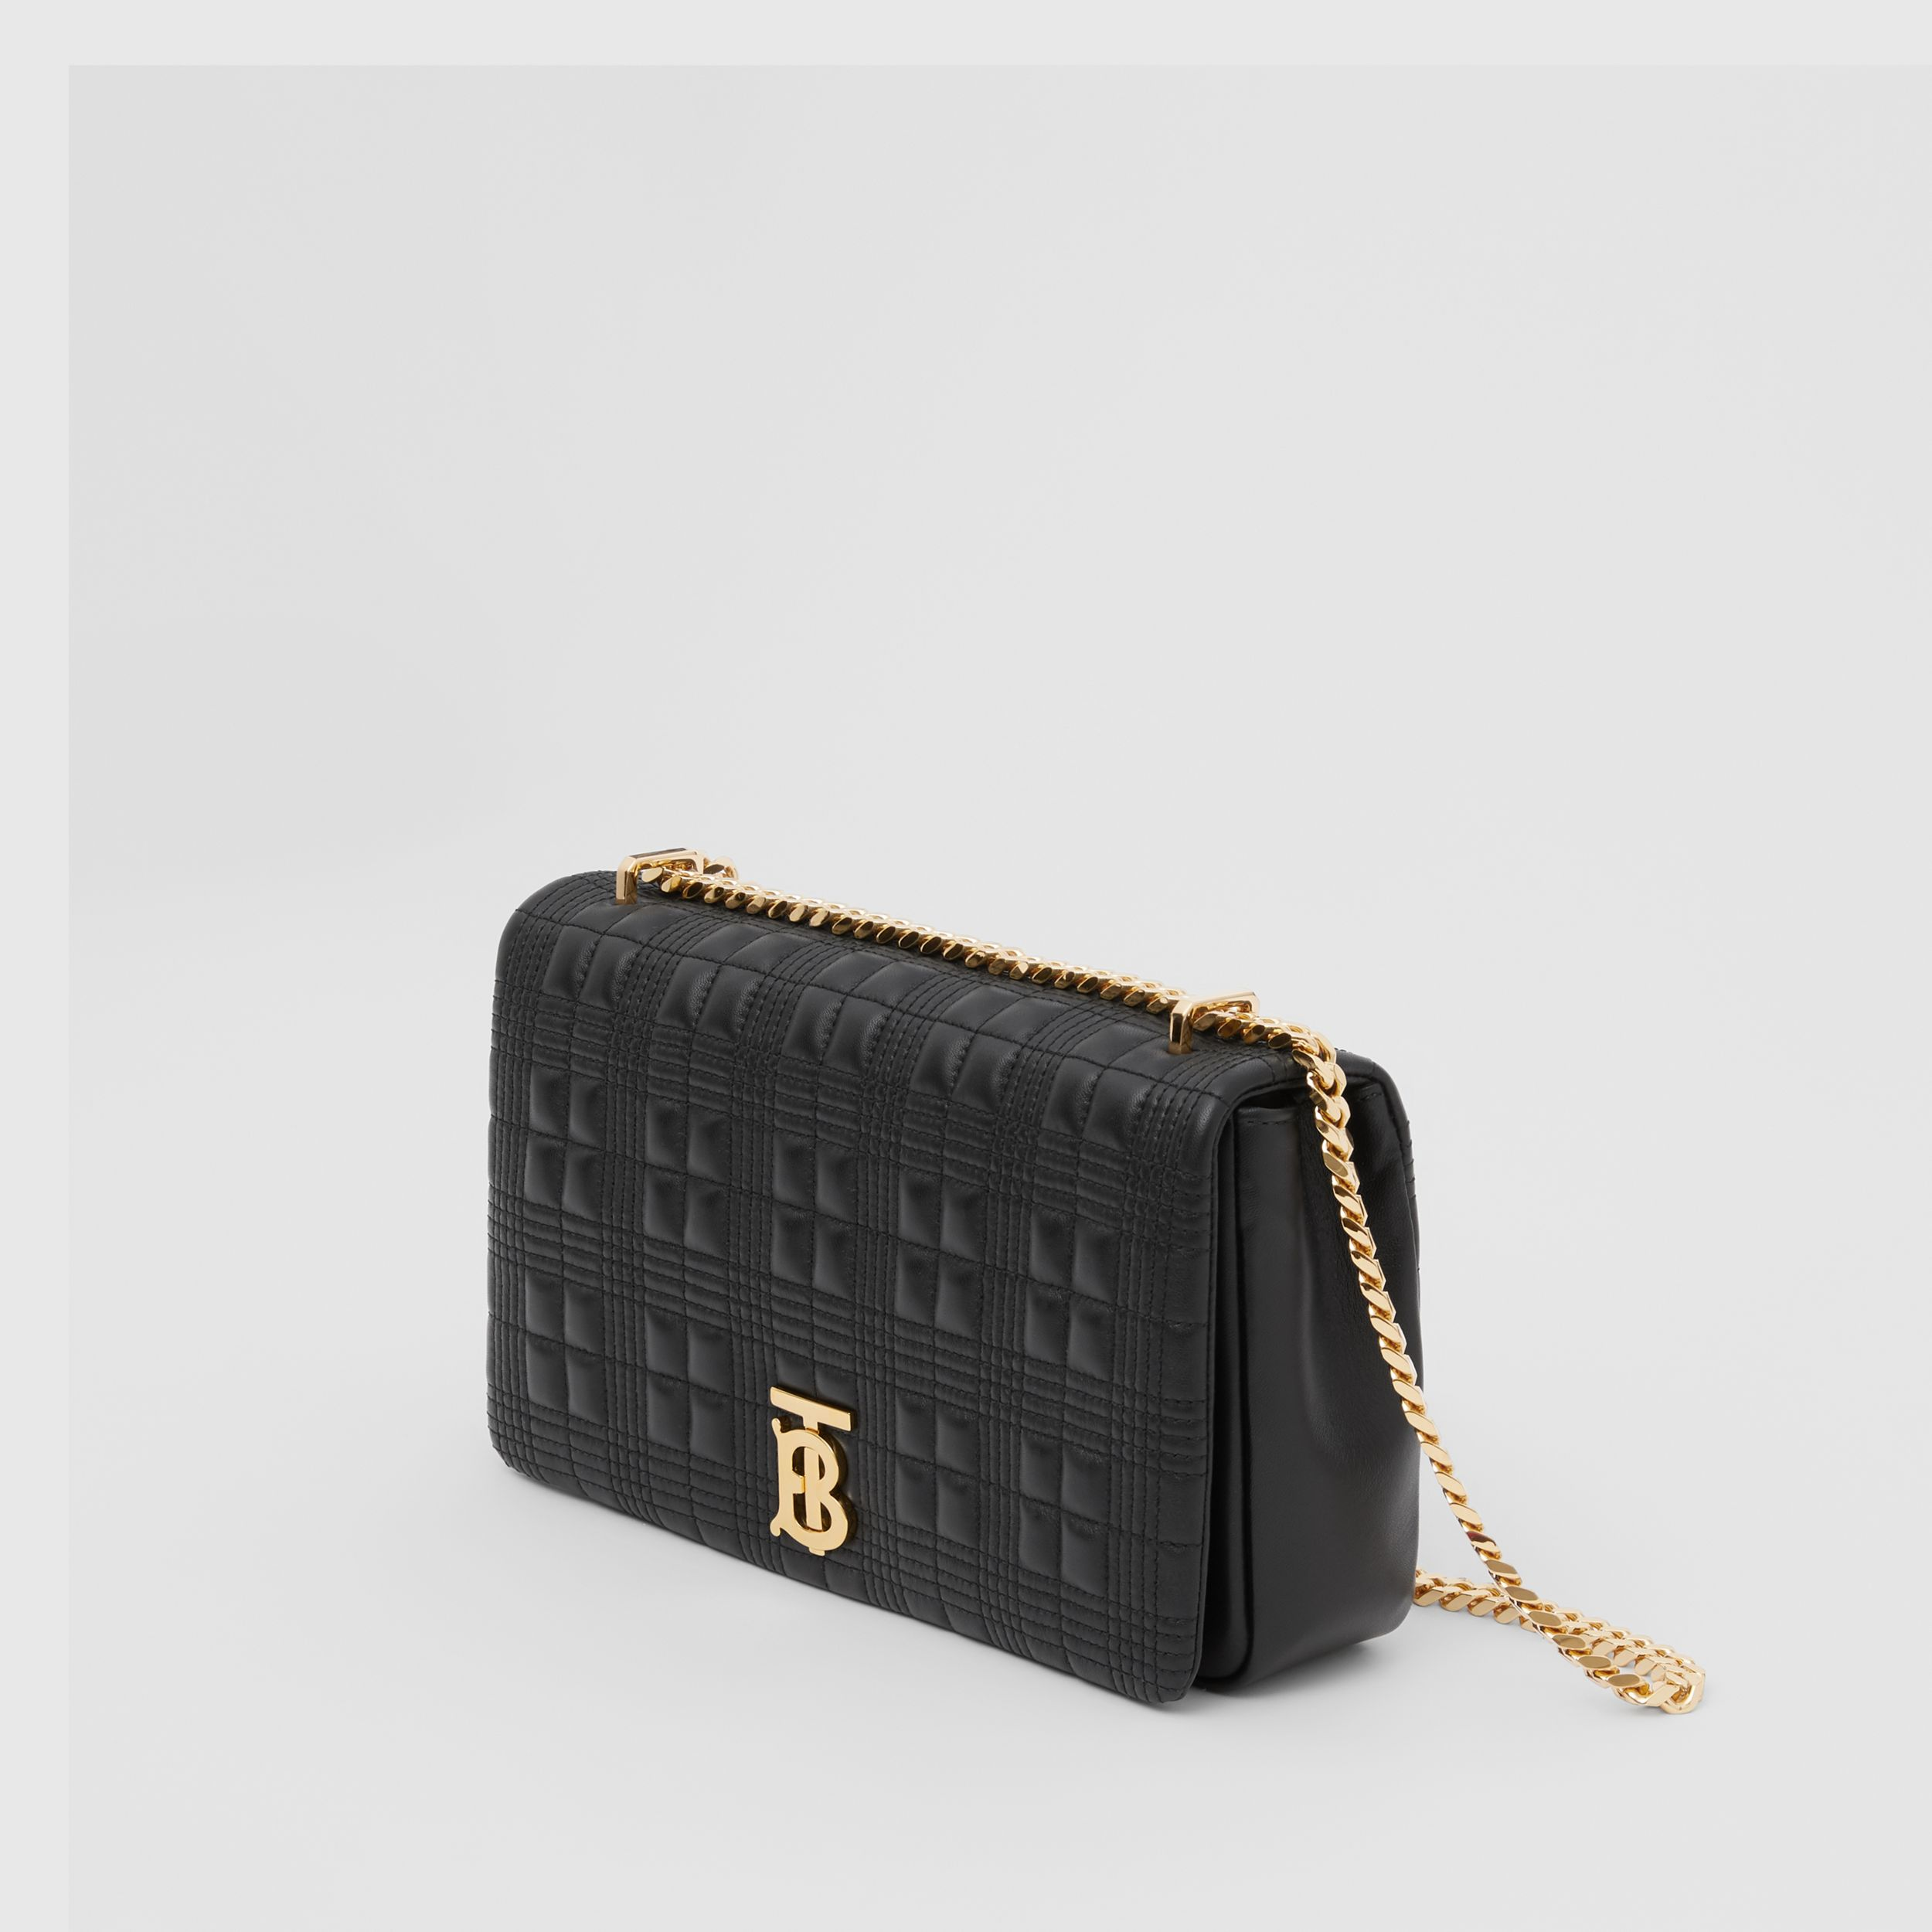 Medium Quilted Lambskin Lola Bag in Black/light Gold - Women | Burberry - 4